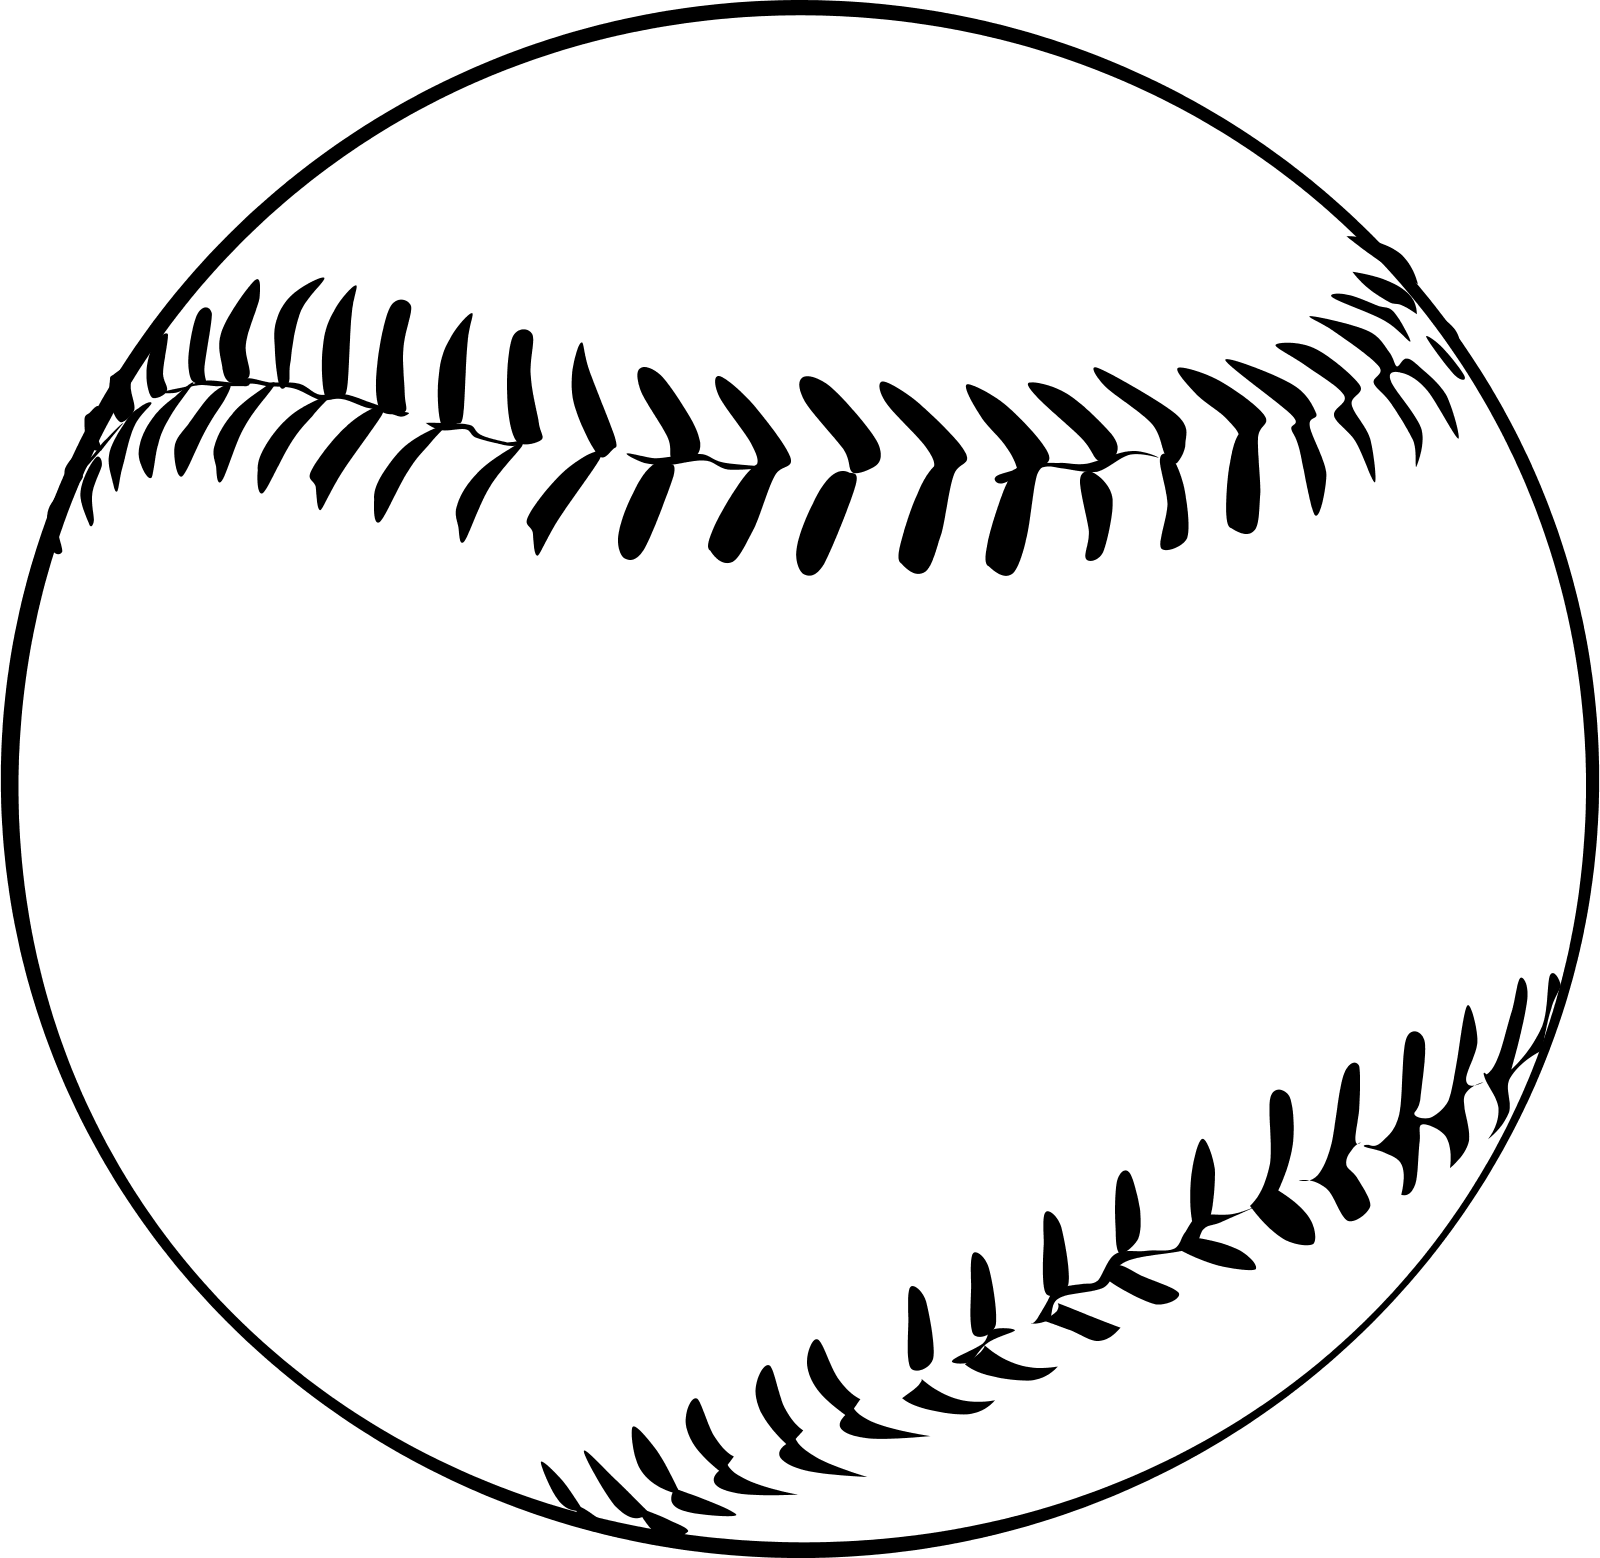 clipart royalty free download Might need this template. Baseball clip stitching